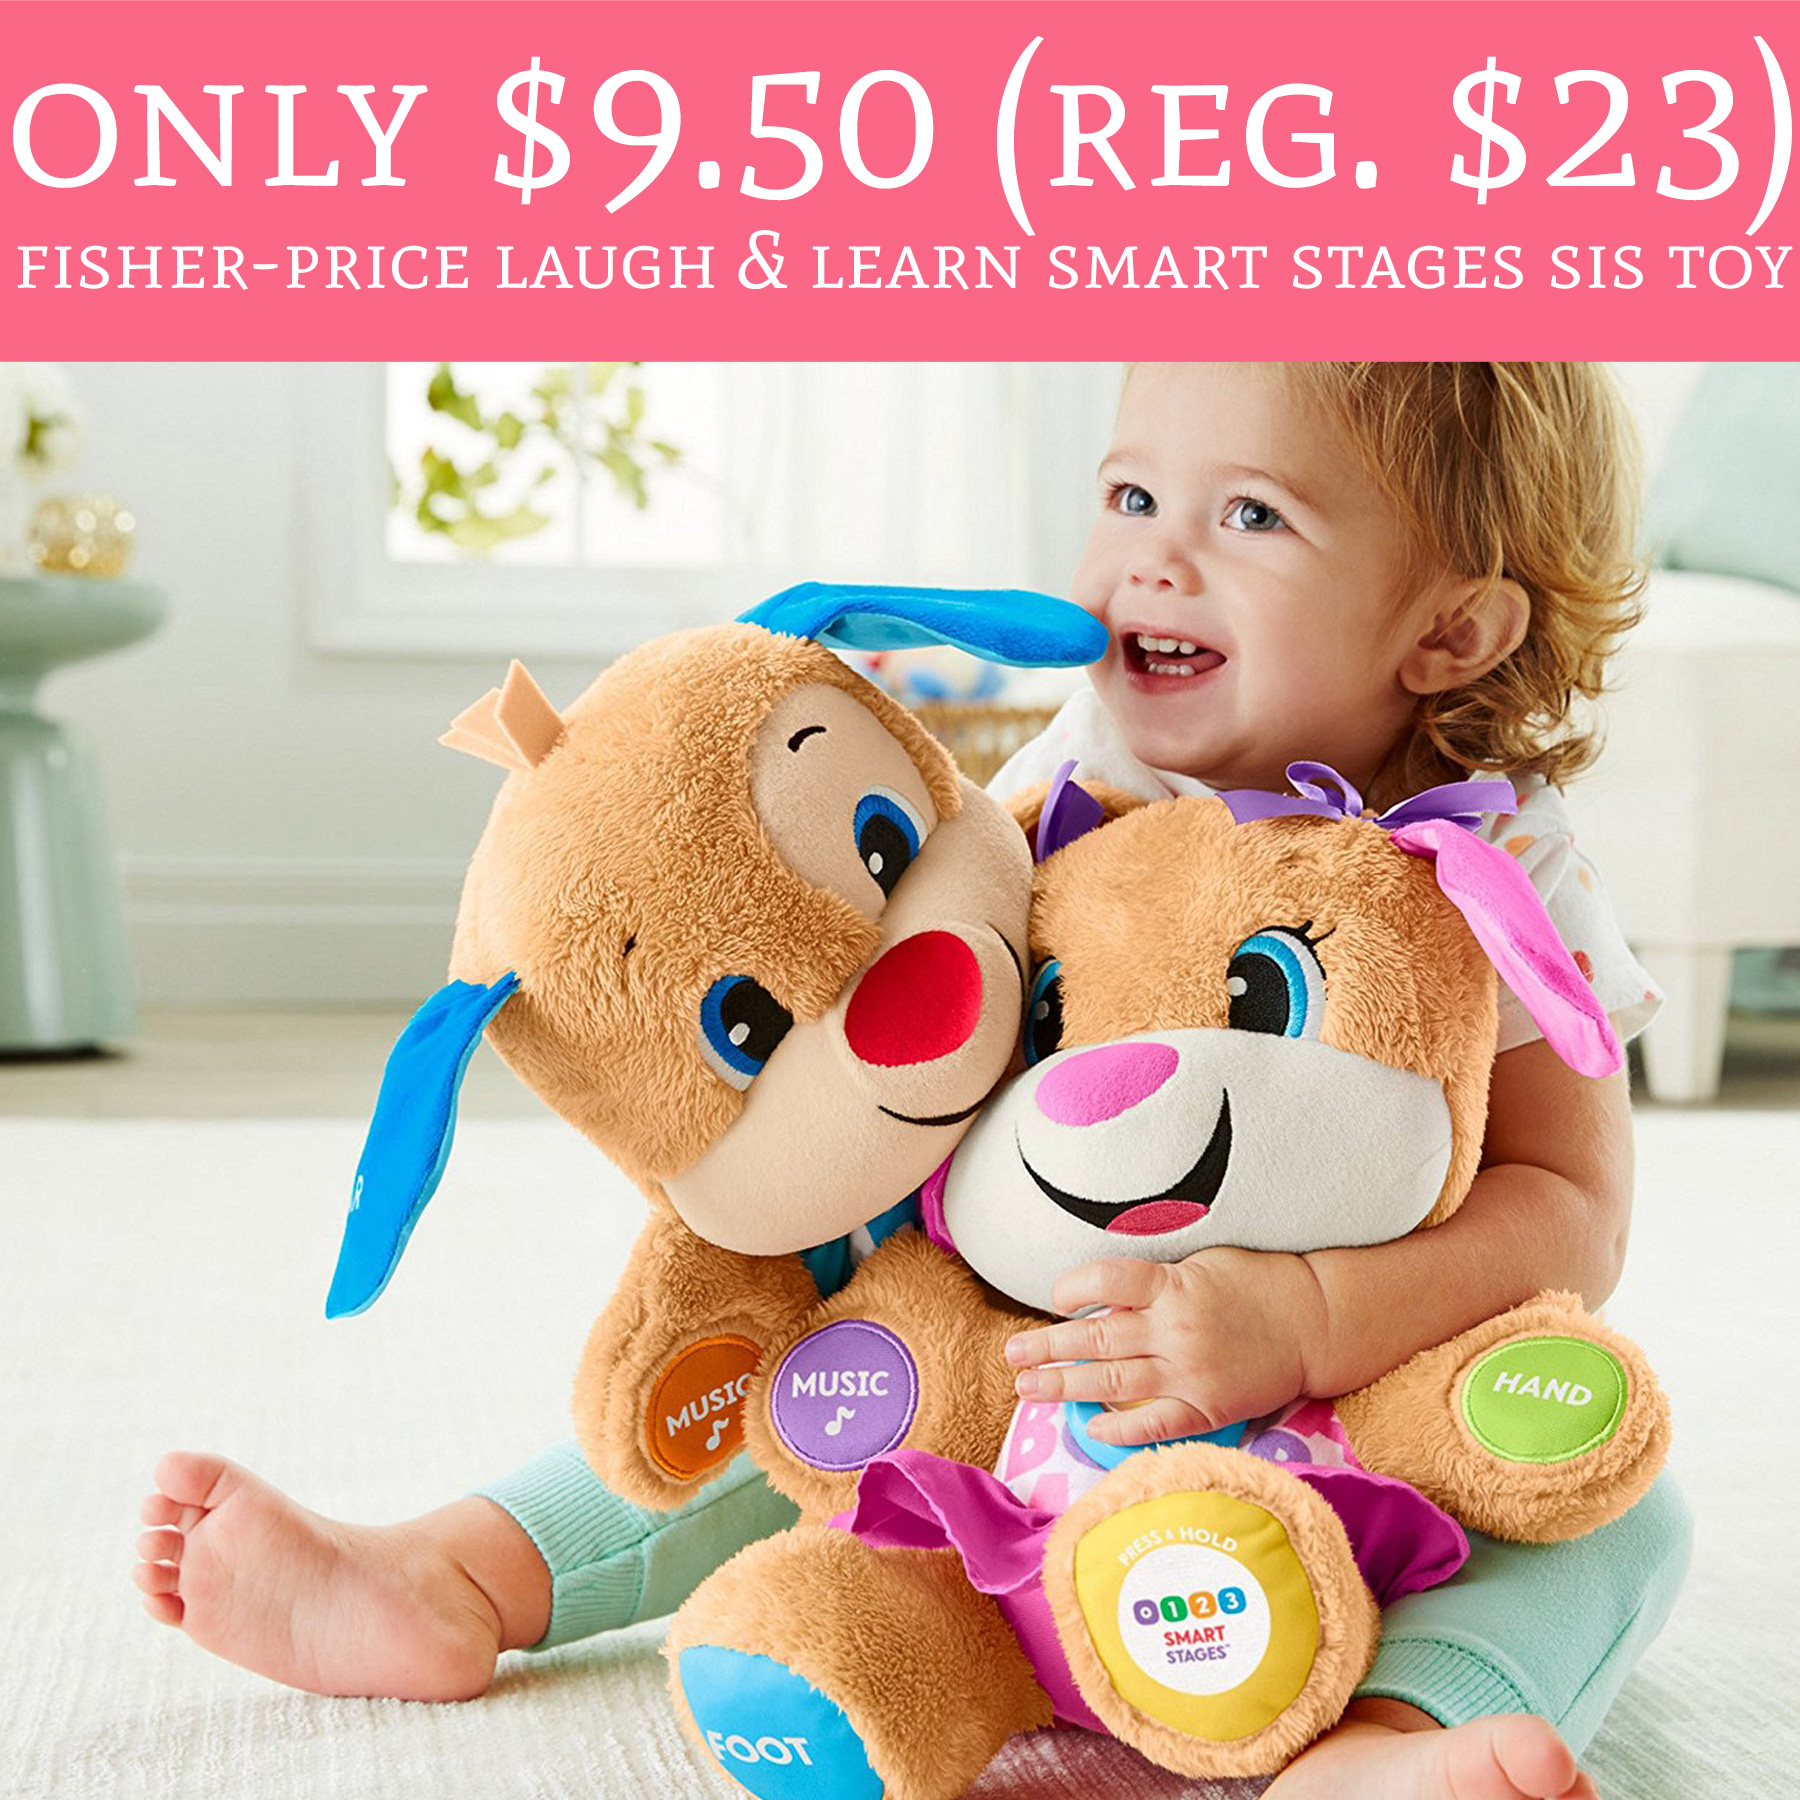 Hot Only 950 Regular 23 Fisher Price Laugh Learn Smart Phone Snag One For The Holidays Head To Amazon Score